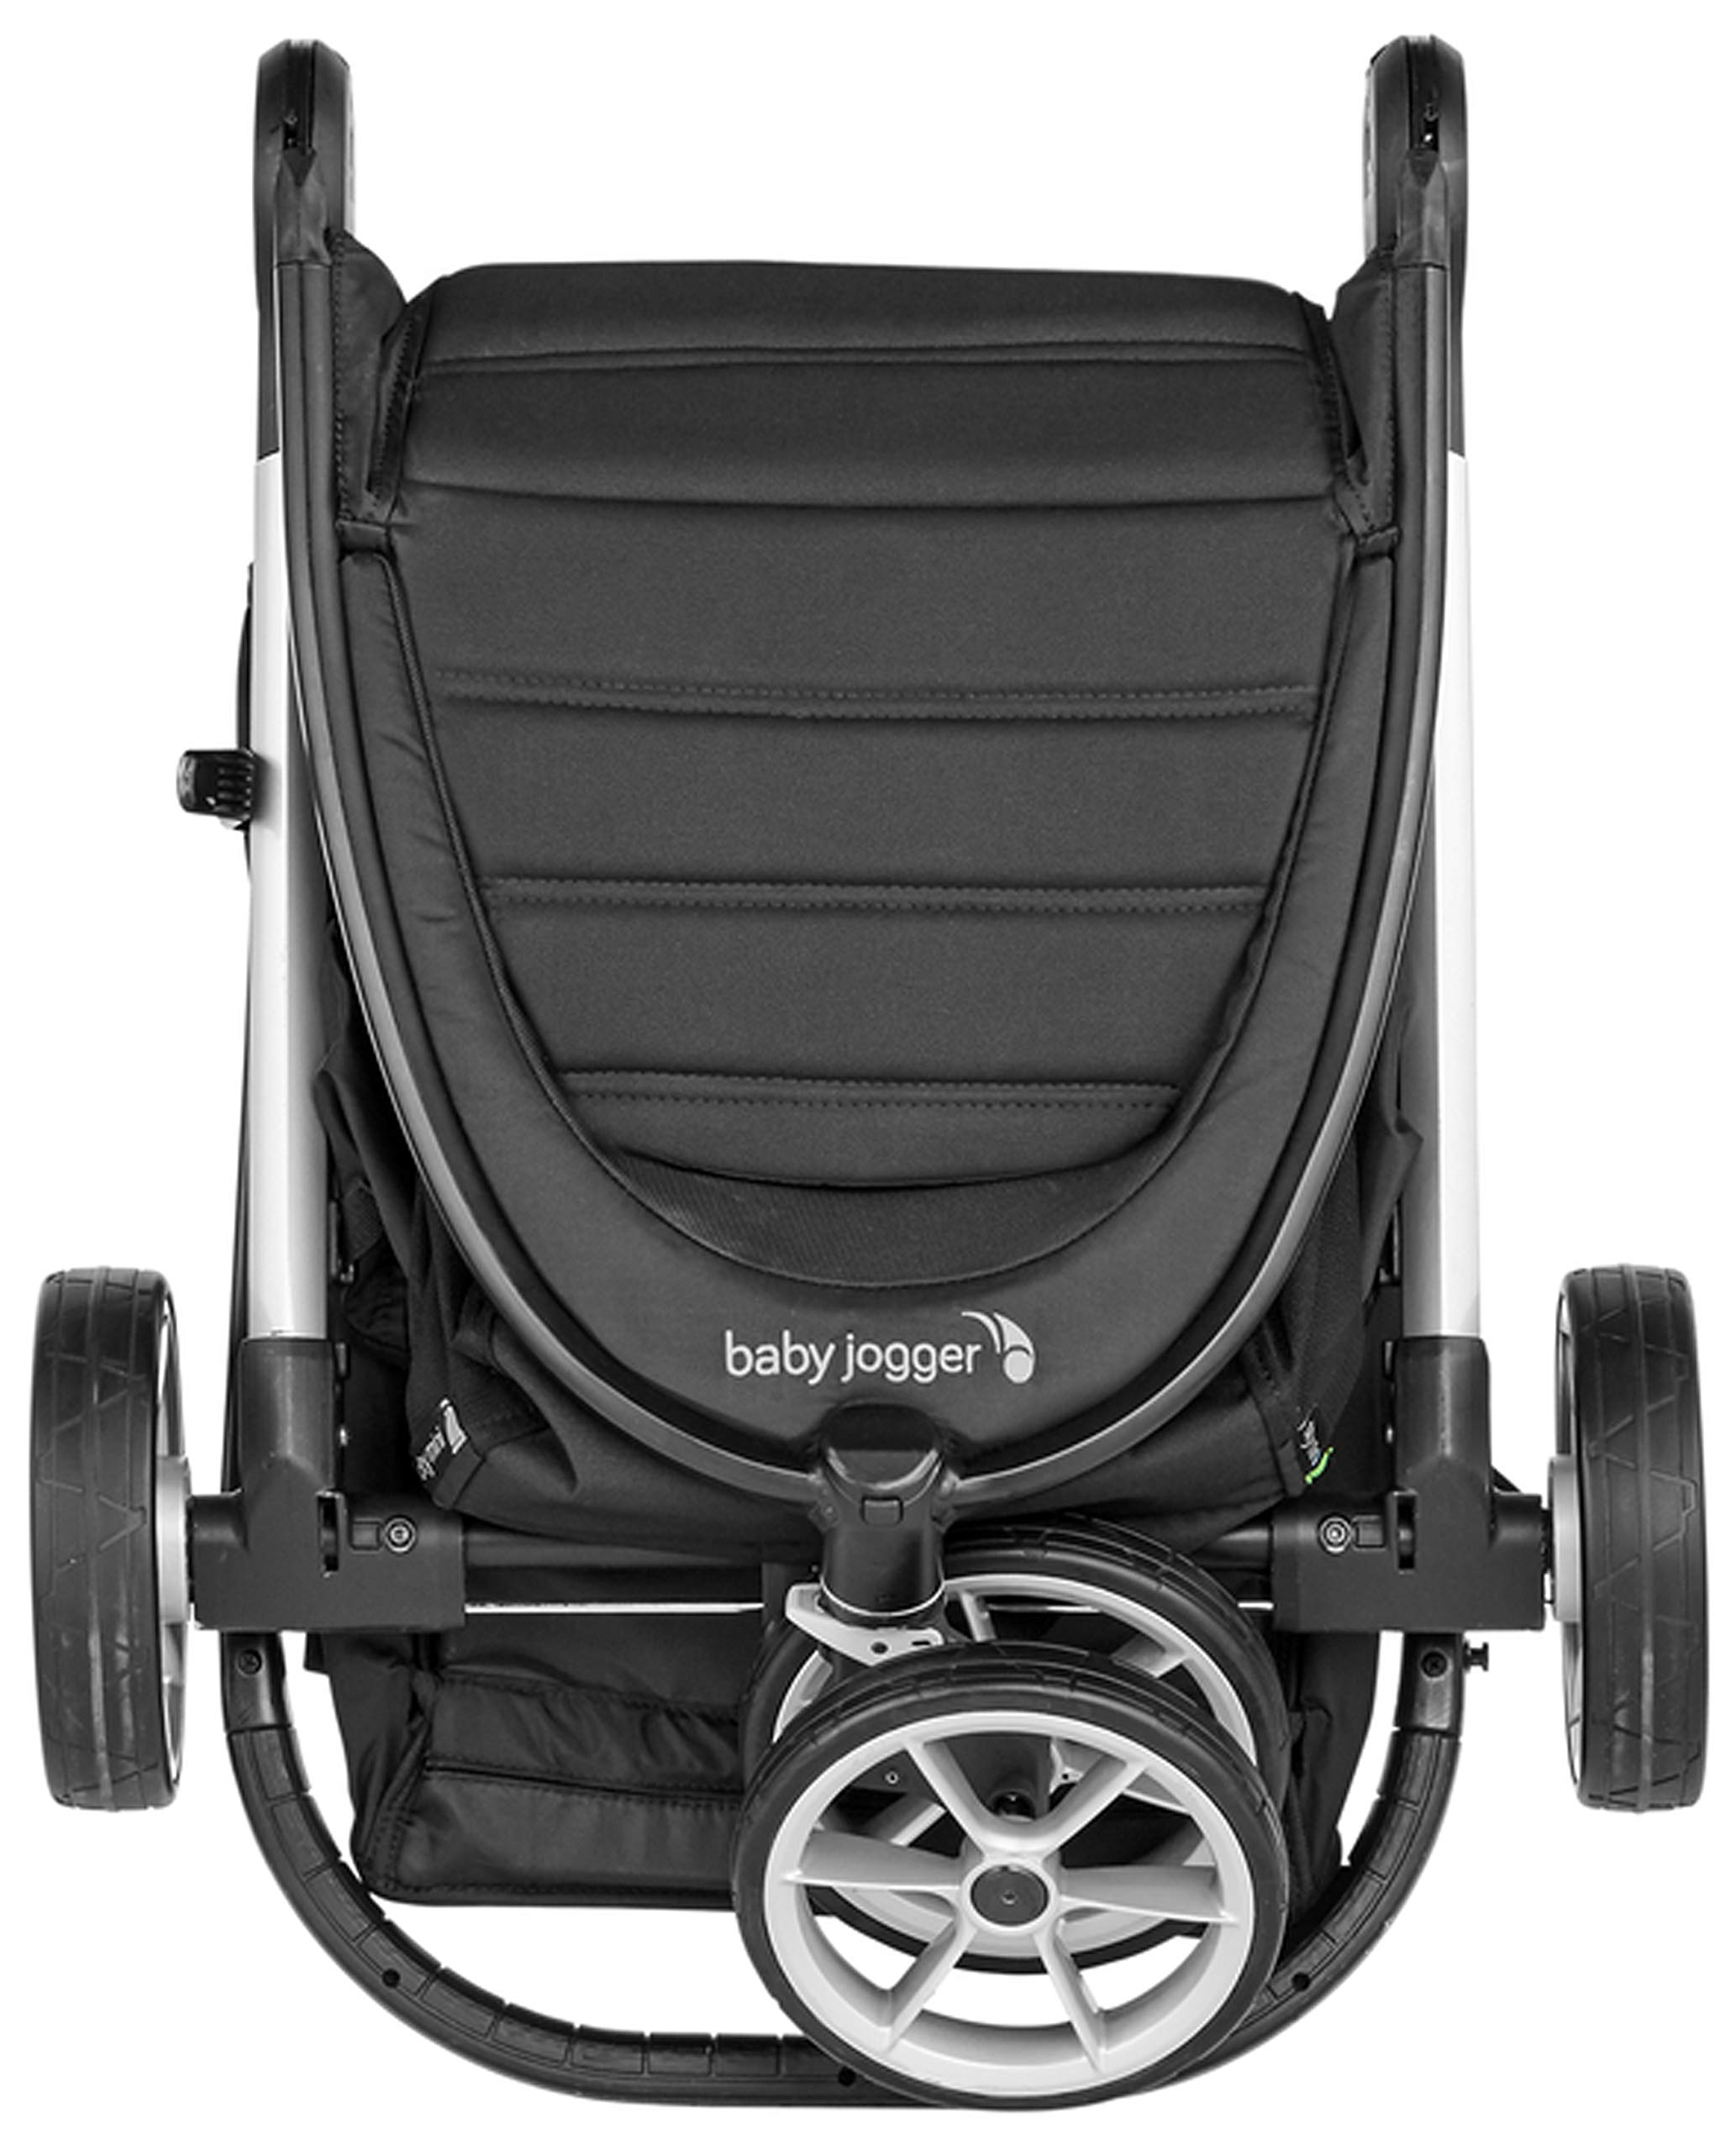 baby jogger City Mini 2 Single Stroller Jet Baby Jogger The baby jogger city mini 2 has an all new lightweight and compact design with the signature one-hand compact fold, with an auto-lock it's remarkably nimble and ready for adventure Lift a strap with one hand and the city mini 2 folds itself: simply and compactly. The auto-lock will lock the fold for transportation or storage The seat, with an adjustable calf support and near-flat recline, holds a child weighing up to 22kg and includes a 5-point stroller harness to keep them comfortable and safely secured 8